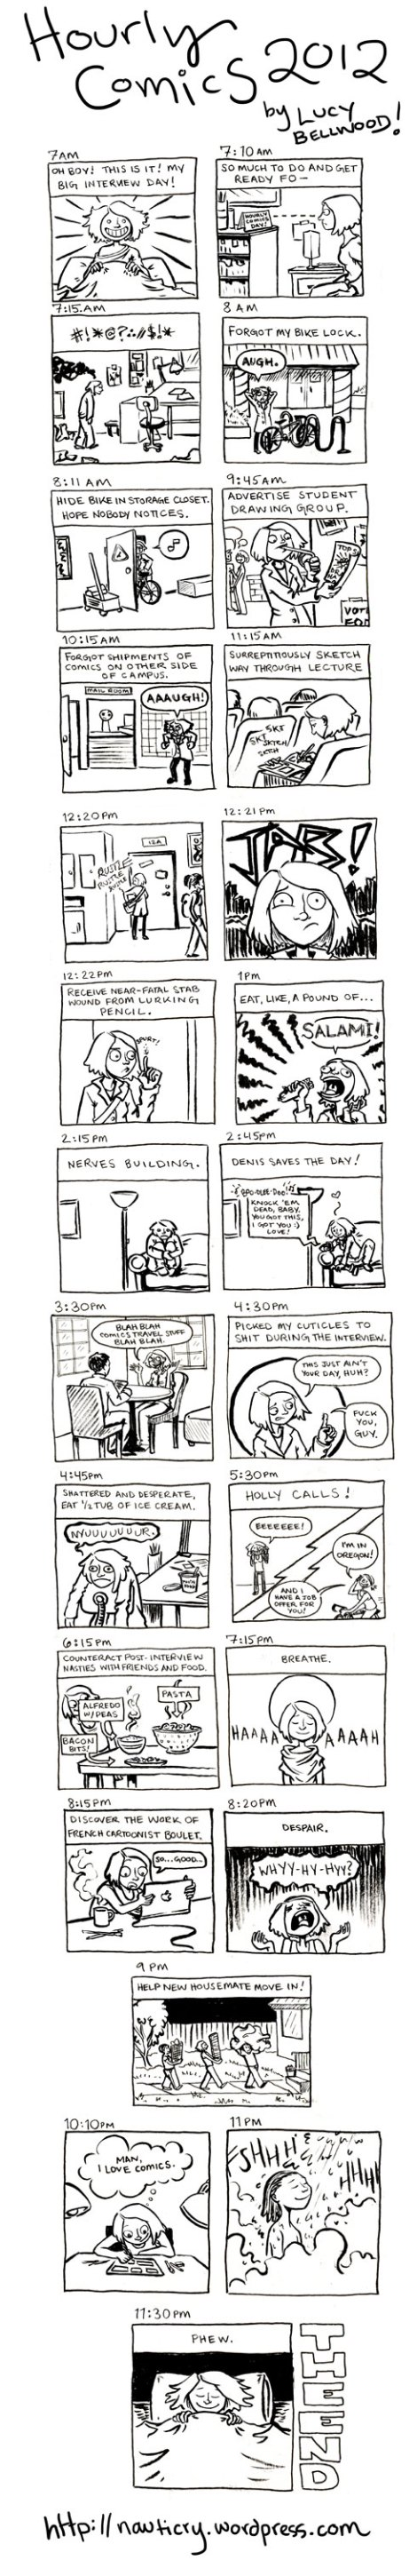 Hourly Comics 2012